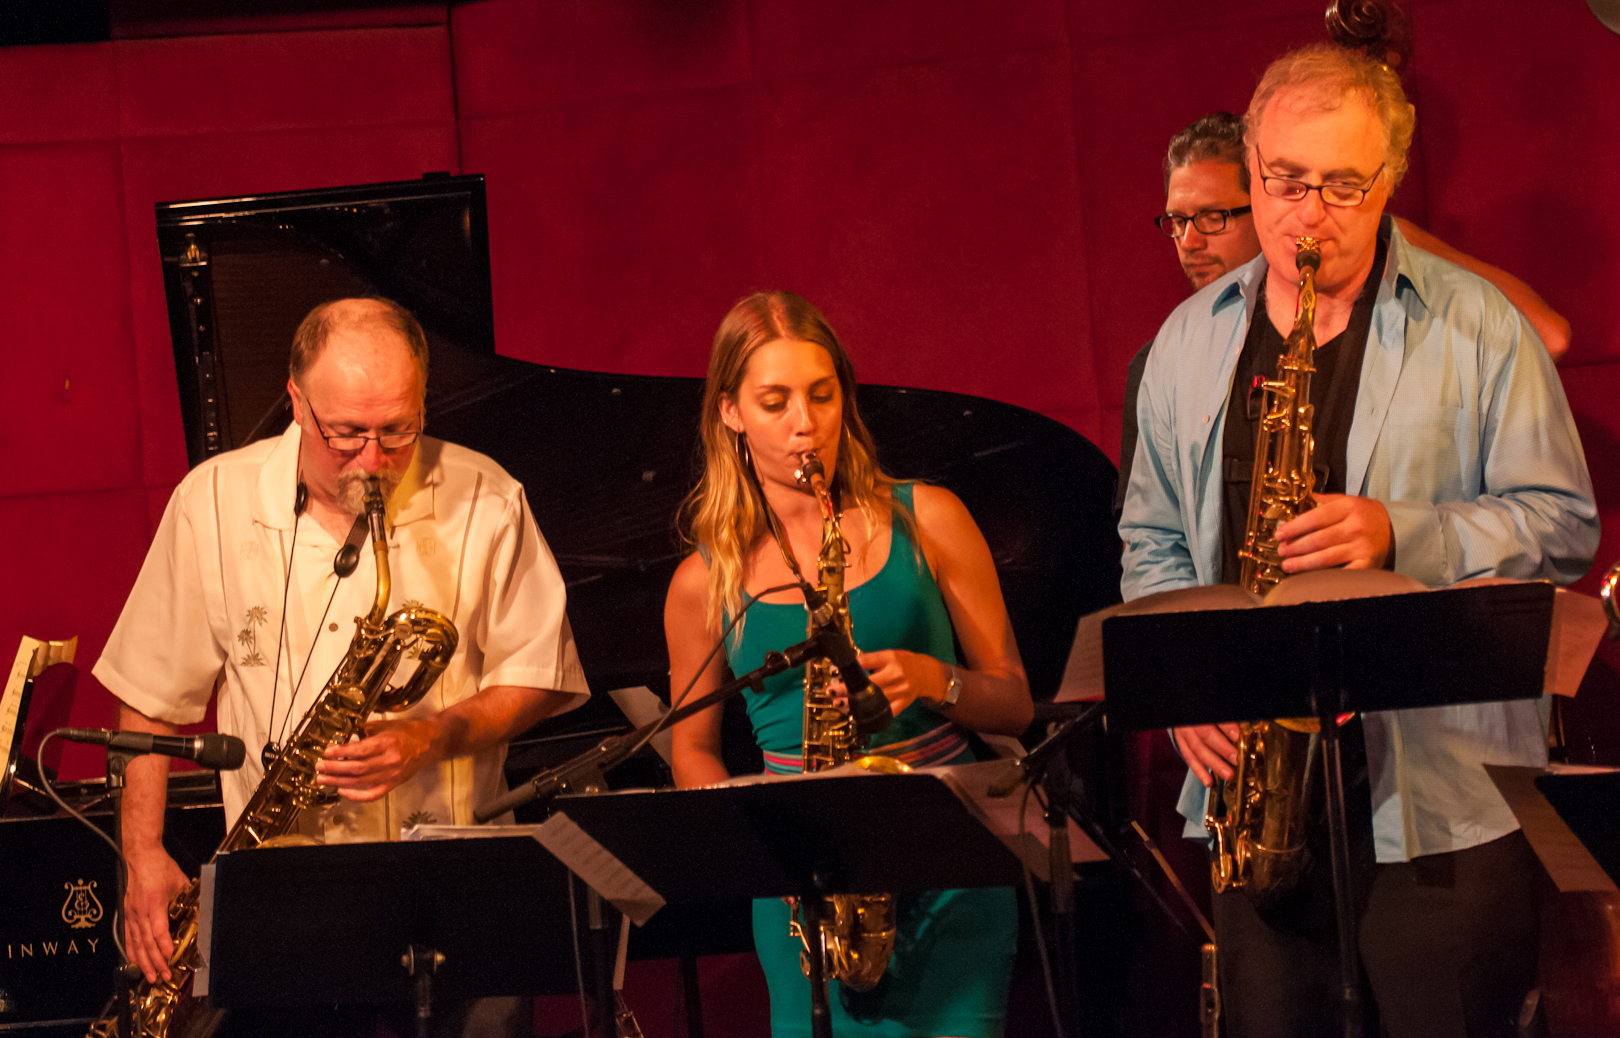 Charlie Kohlhase, Hailey Niswanger and Russ Gershon with the Either/Orchestra at the Jazz Standard